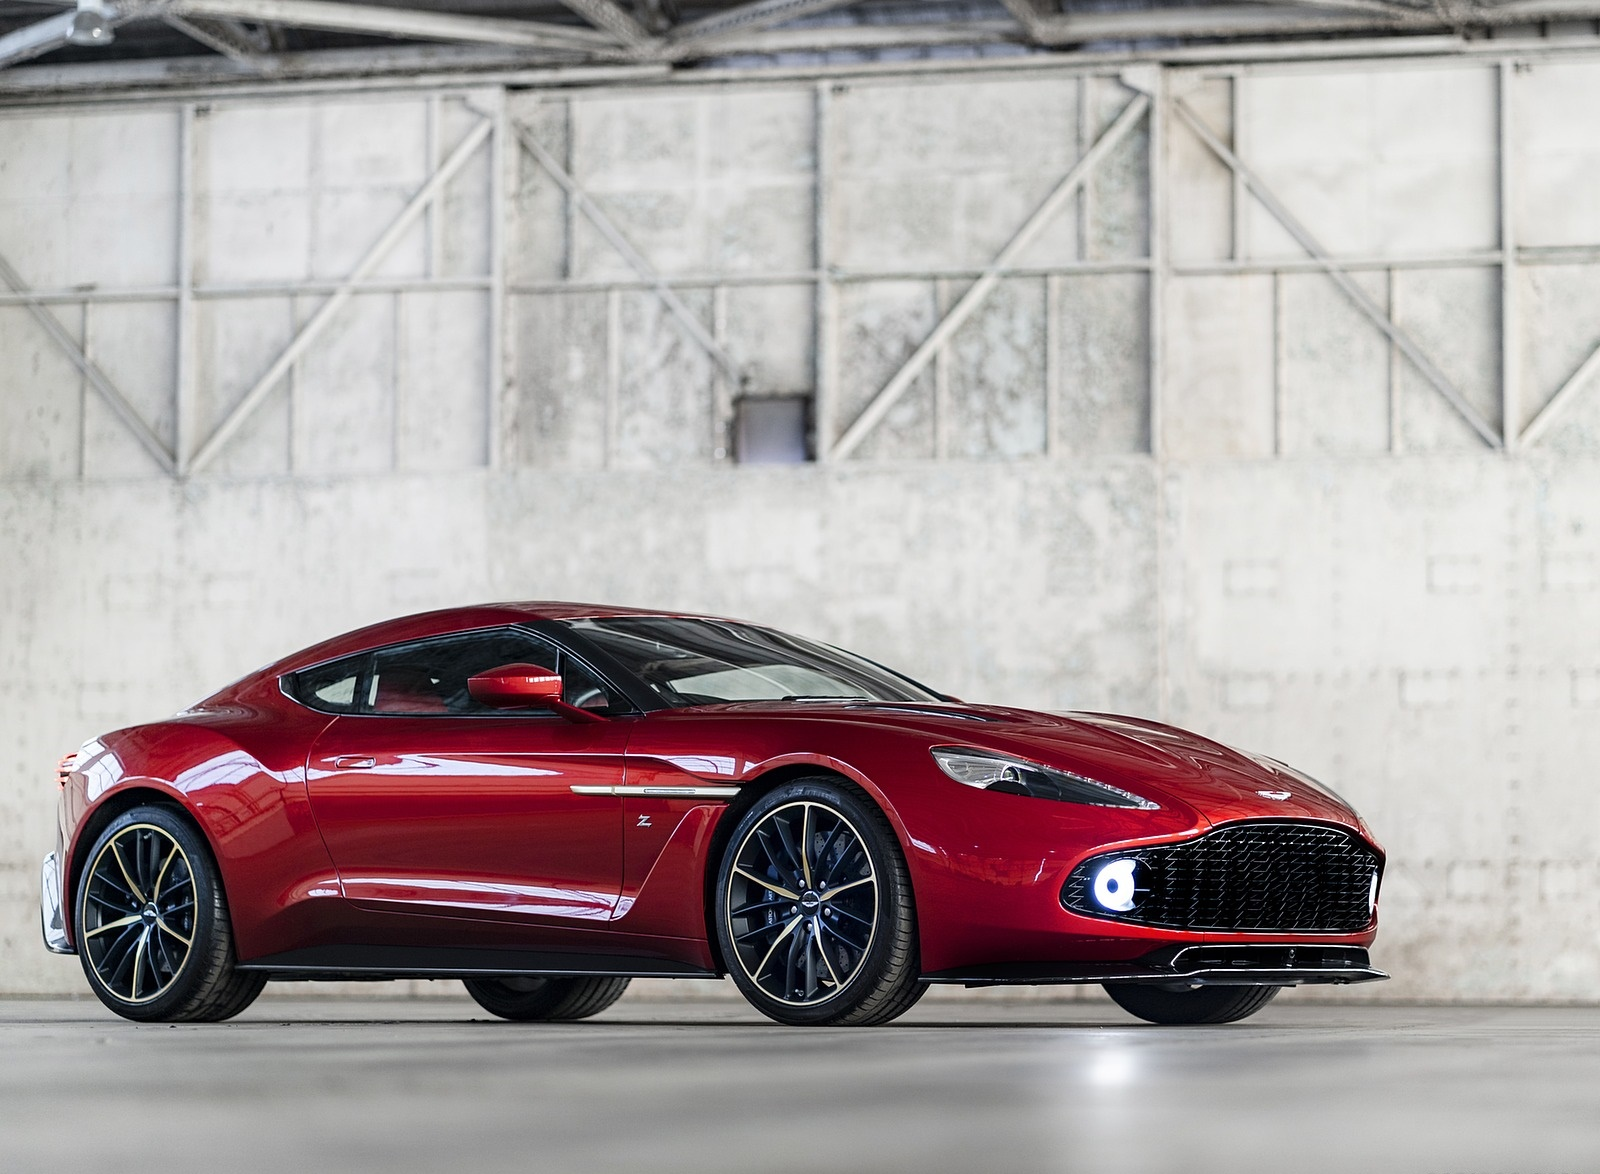 2018 Aston Martin Vanquish Zagato Coupe Wallpapers 26 Hd Images Newcarcars